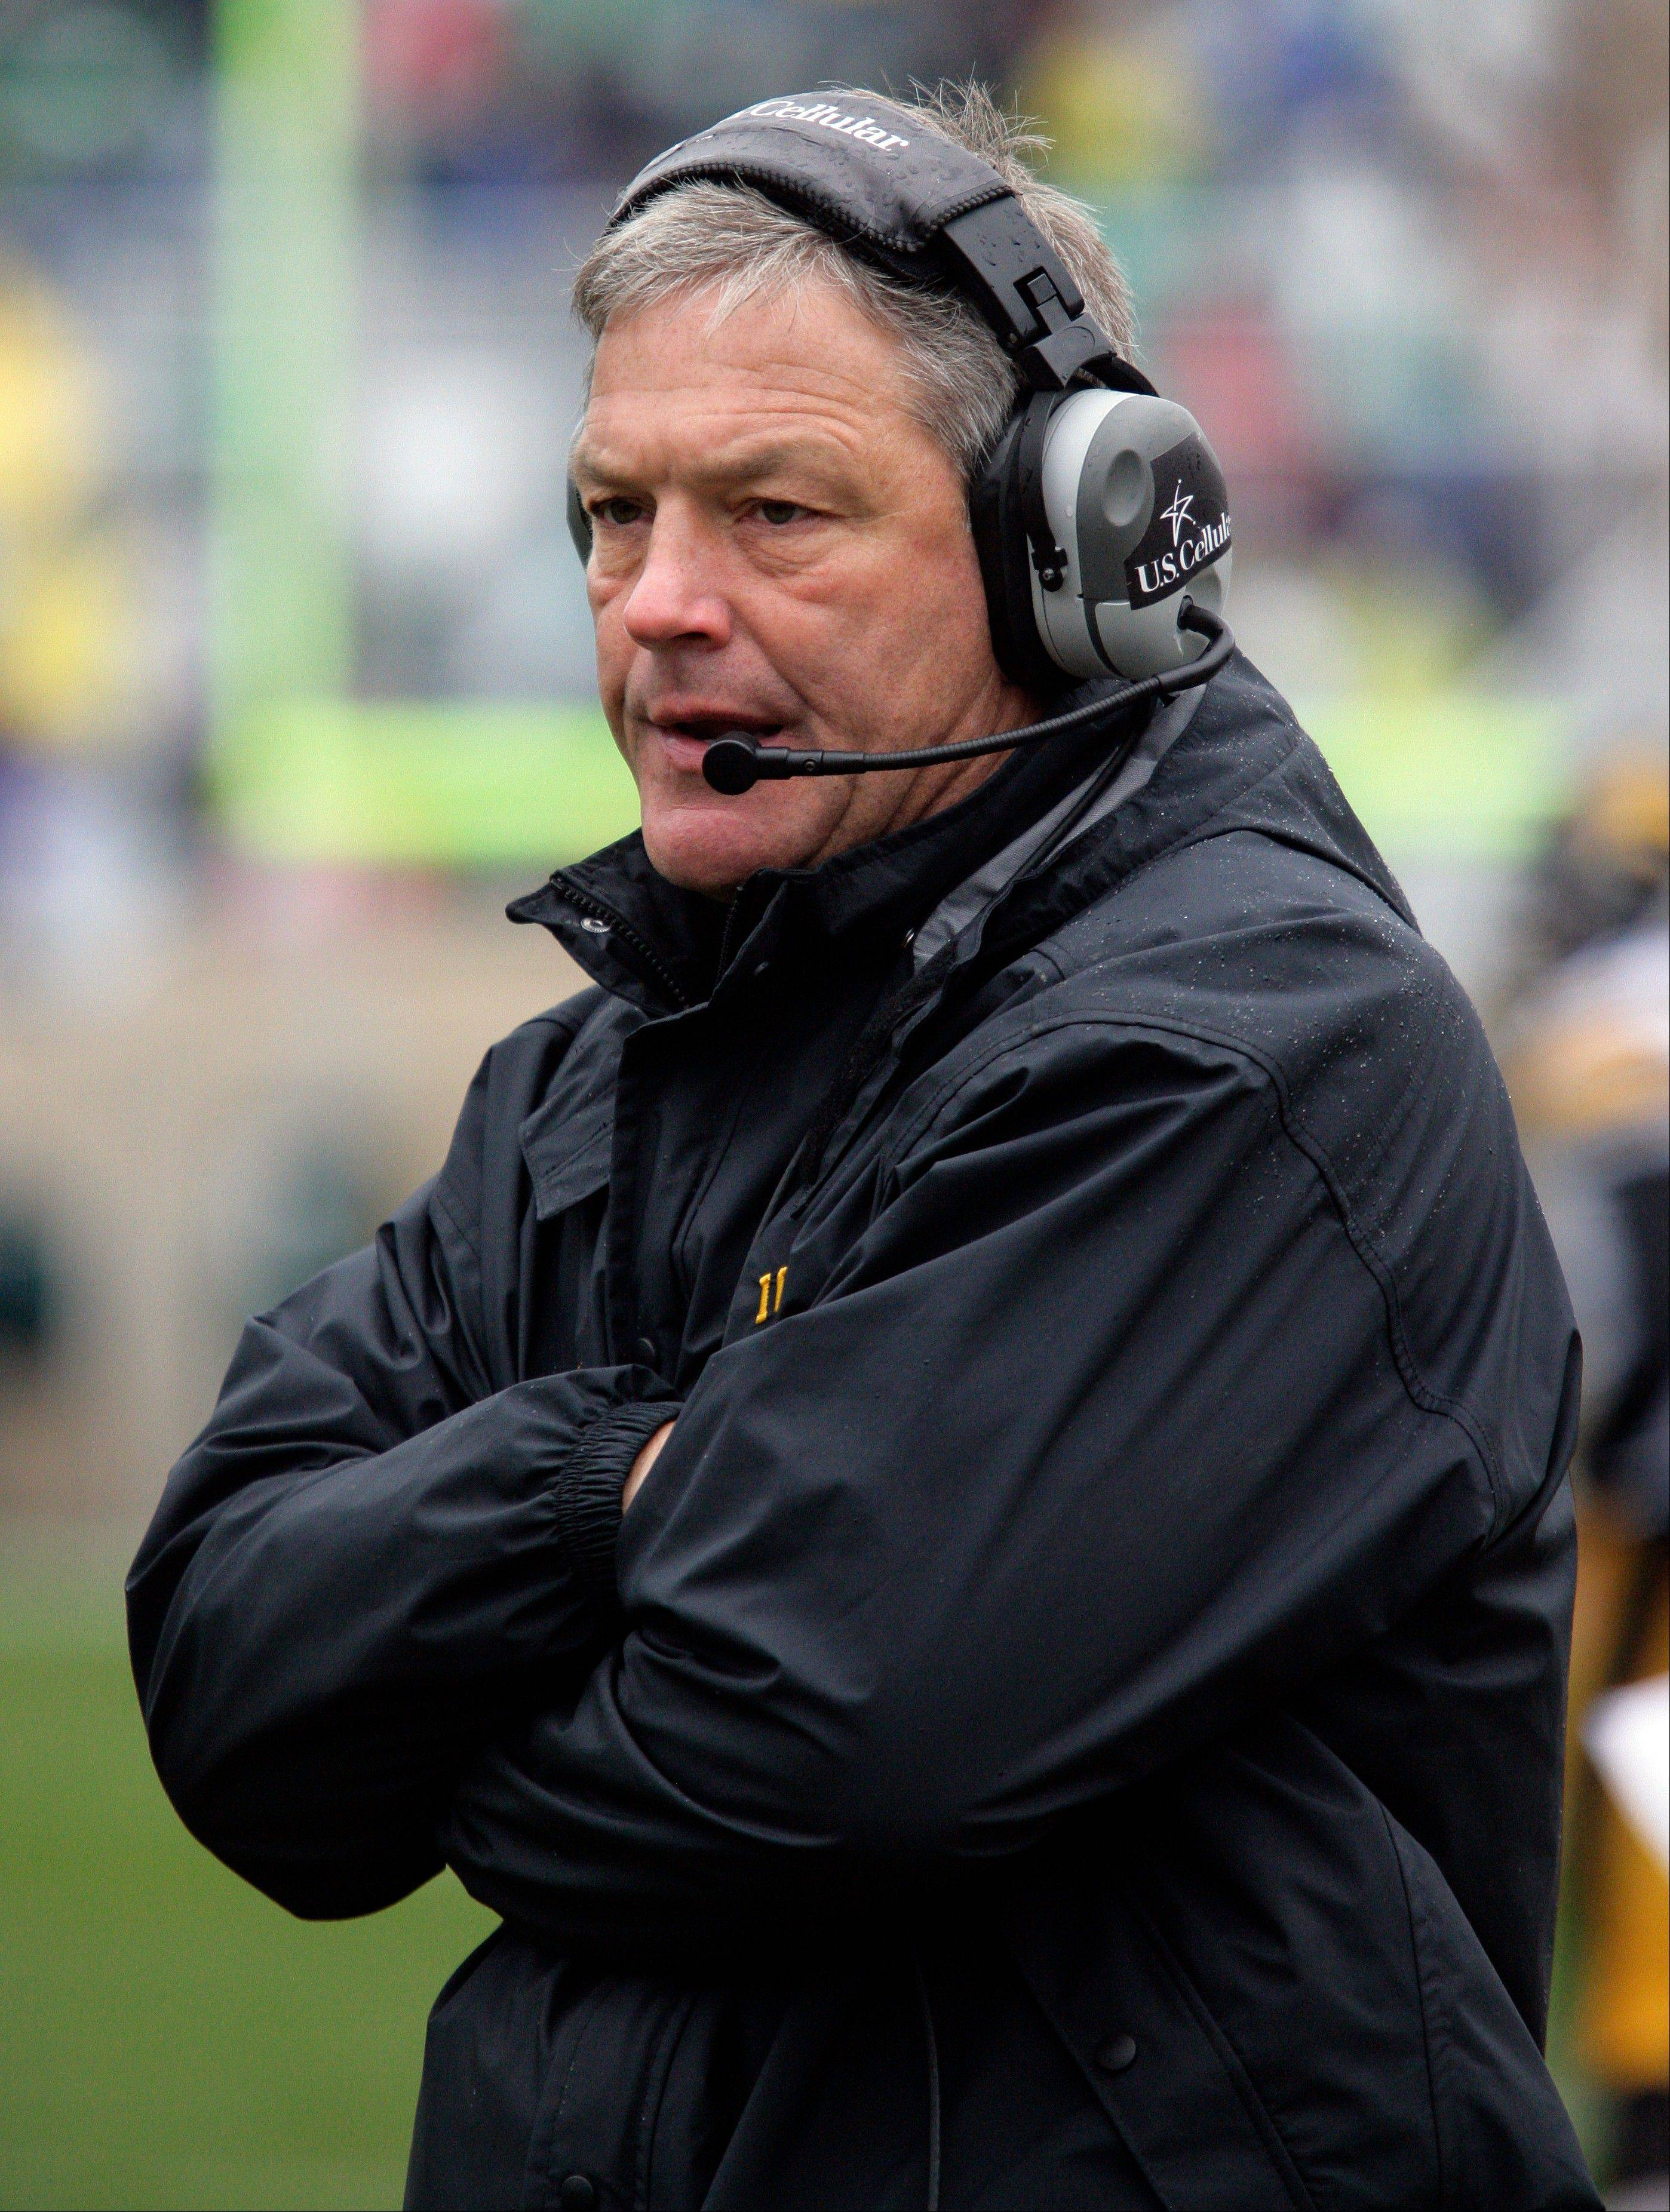 Iowa isn't giving up on coach Kirk Ferentz despite a third straight season of diminishing returns. The Hawkeyes simply have to hope that the well-respected coach who has twice revived the program has another turnaround in him.